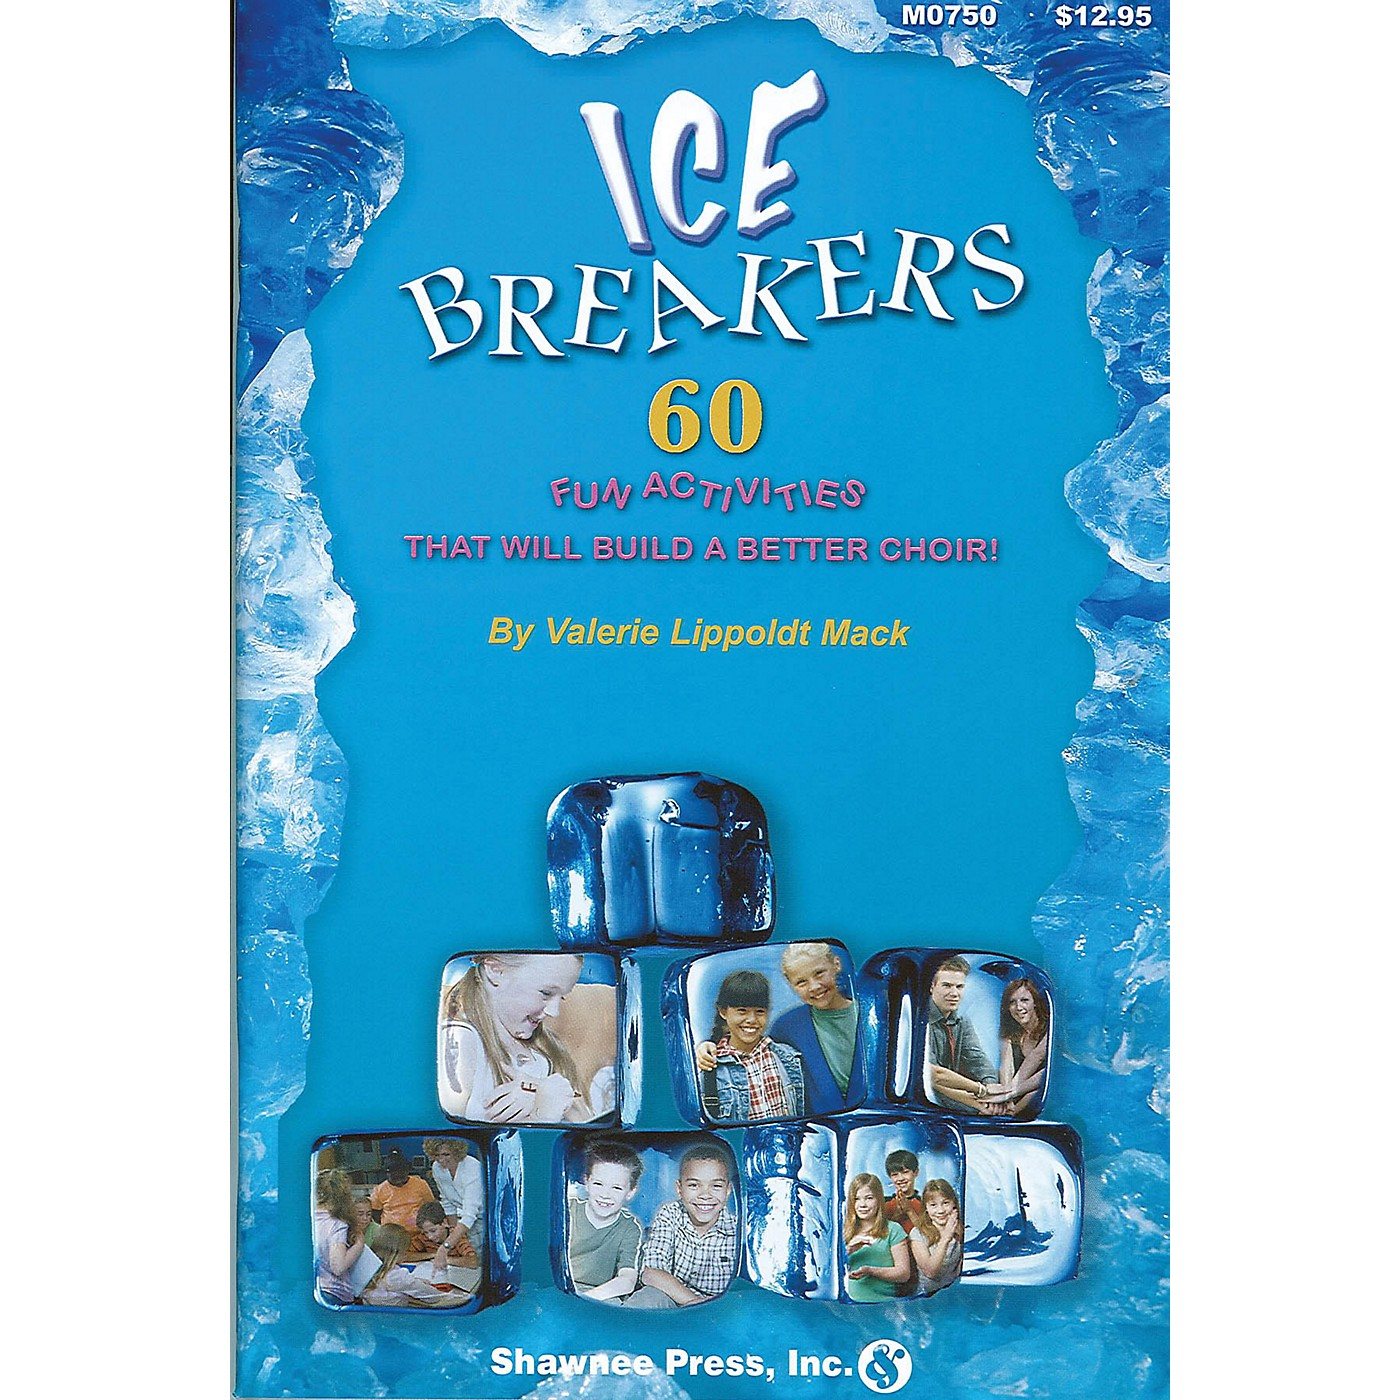 Shawnee Press IceBreakers (60 Fun Activities to Build a Better Choir) music activities & puzzles thumbnail